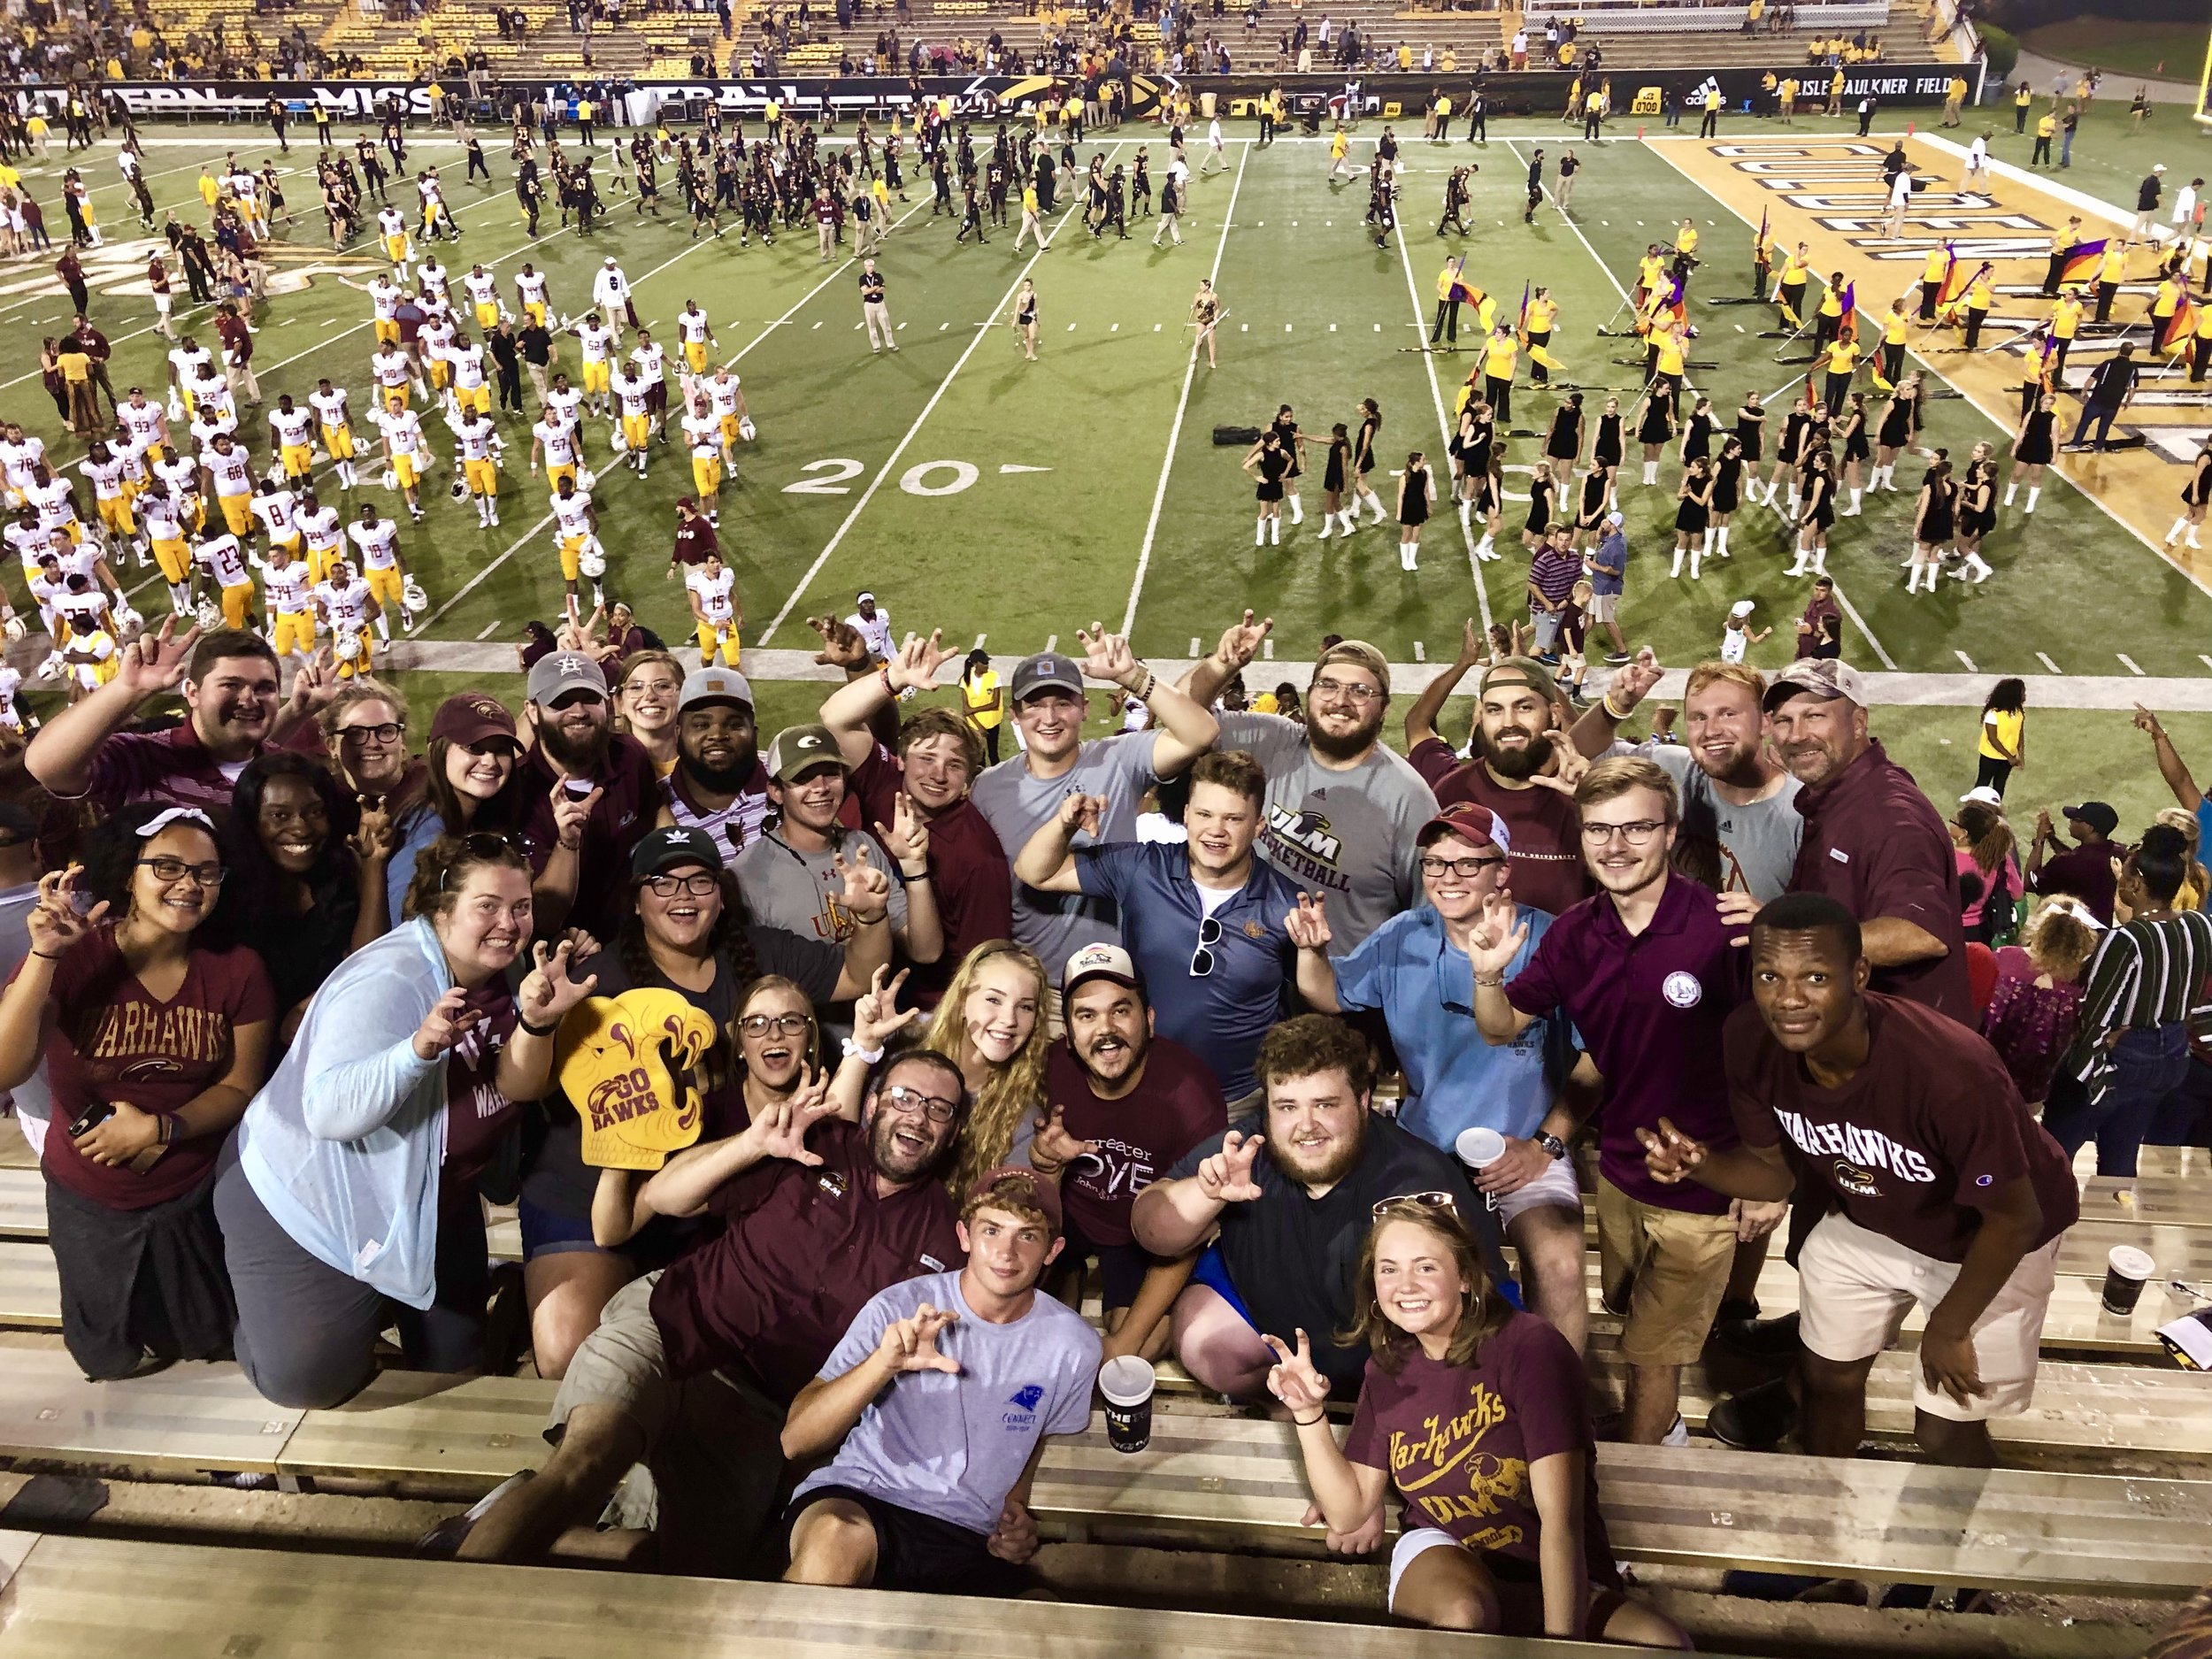 Road Trip with a Victory for ULM vs. Southern Mississippi